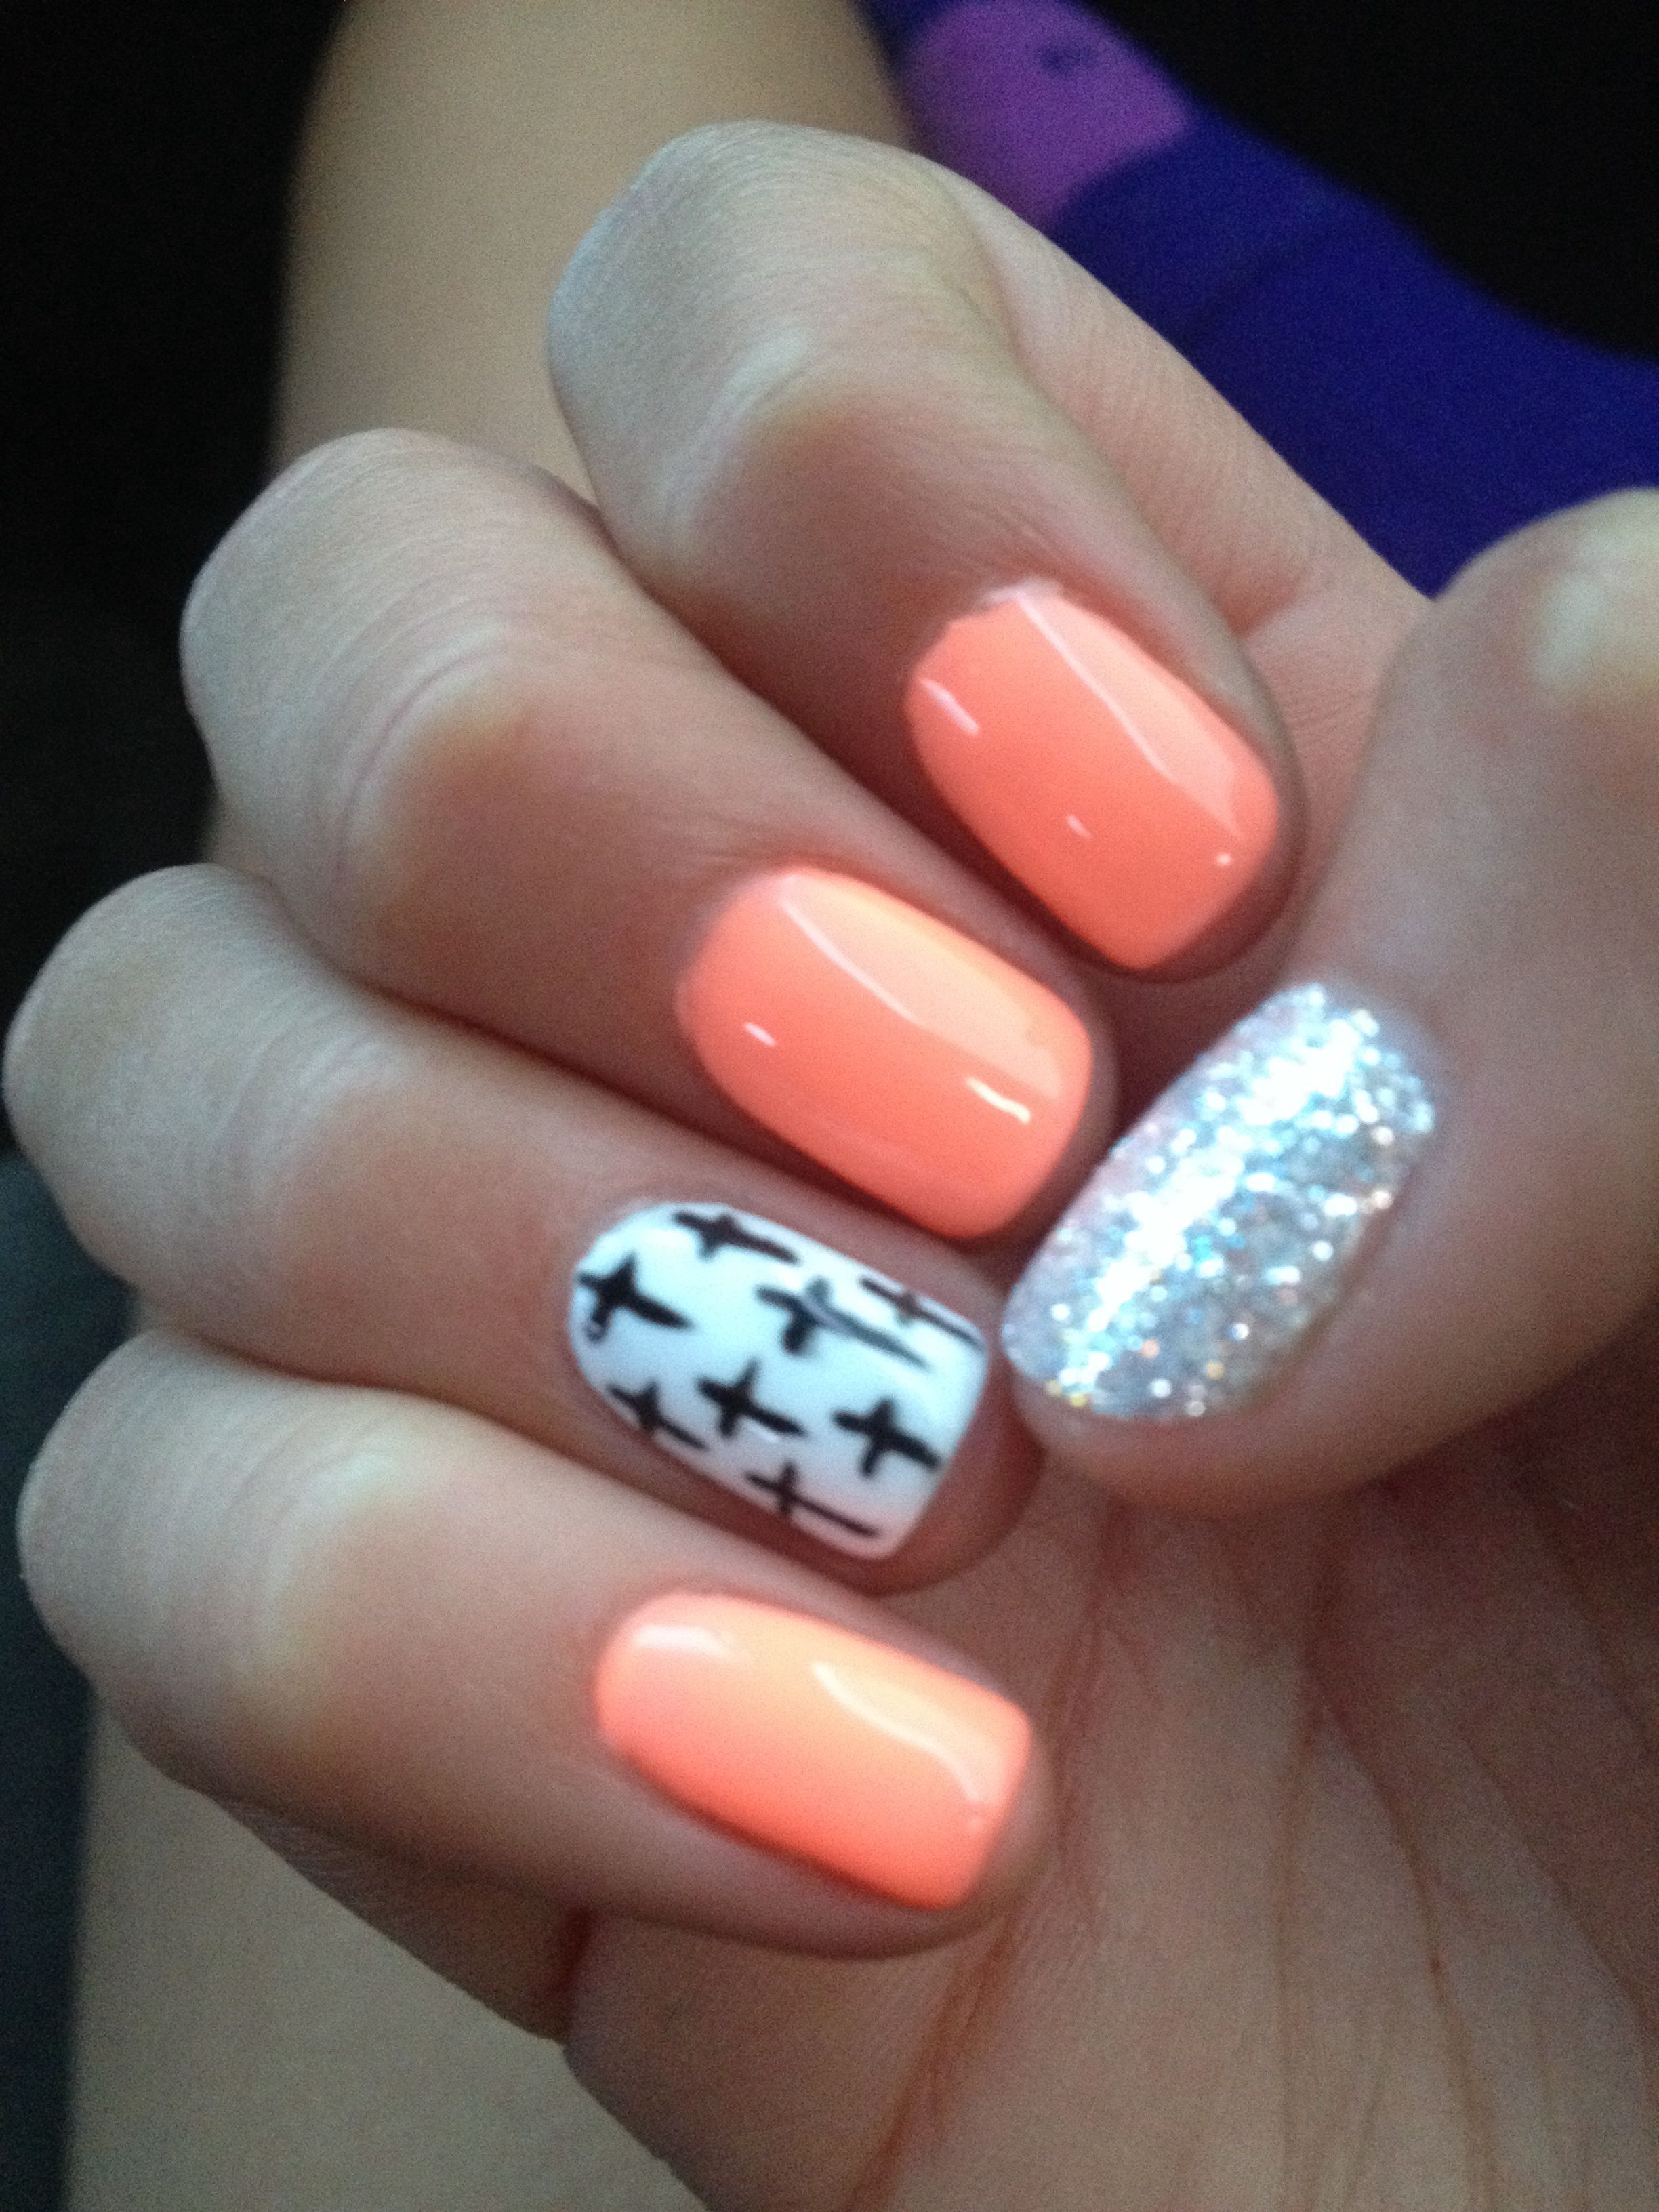 My gel nails | •Nails• | Pinterest | Ring finger, Finger and Peach